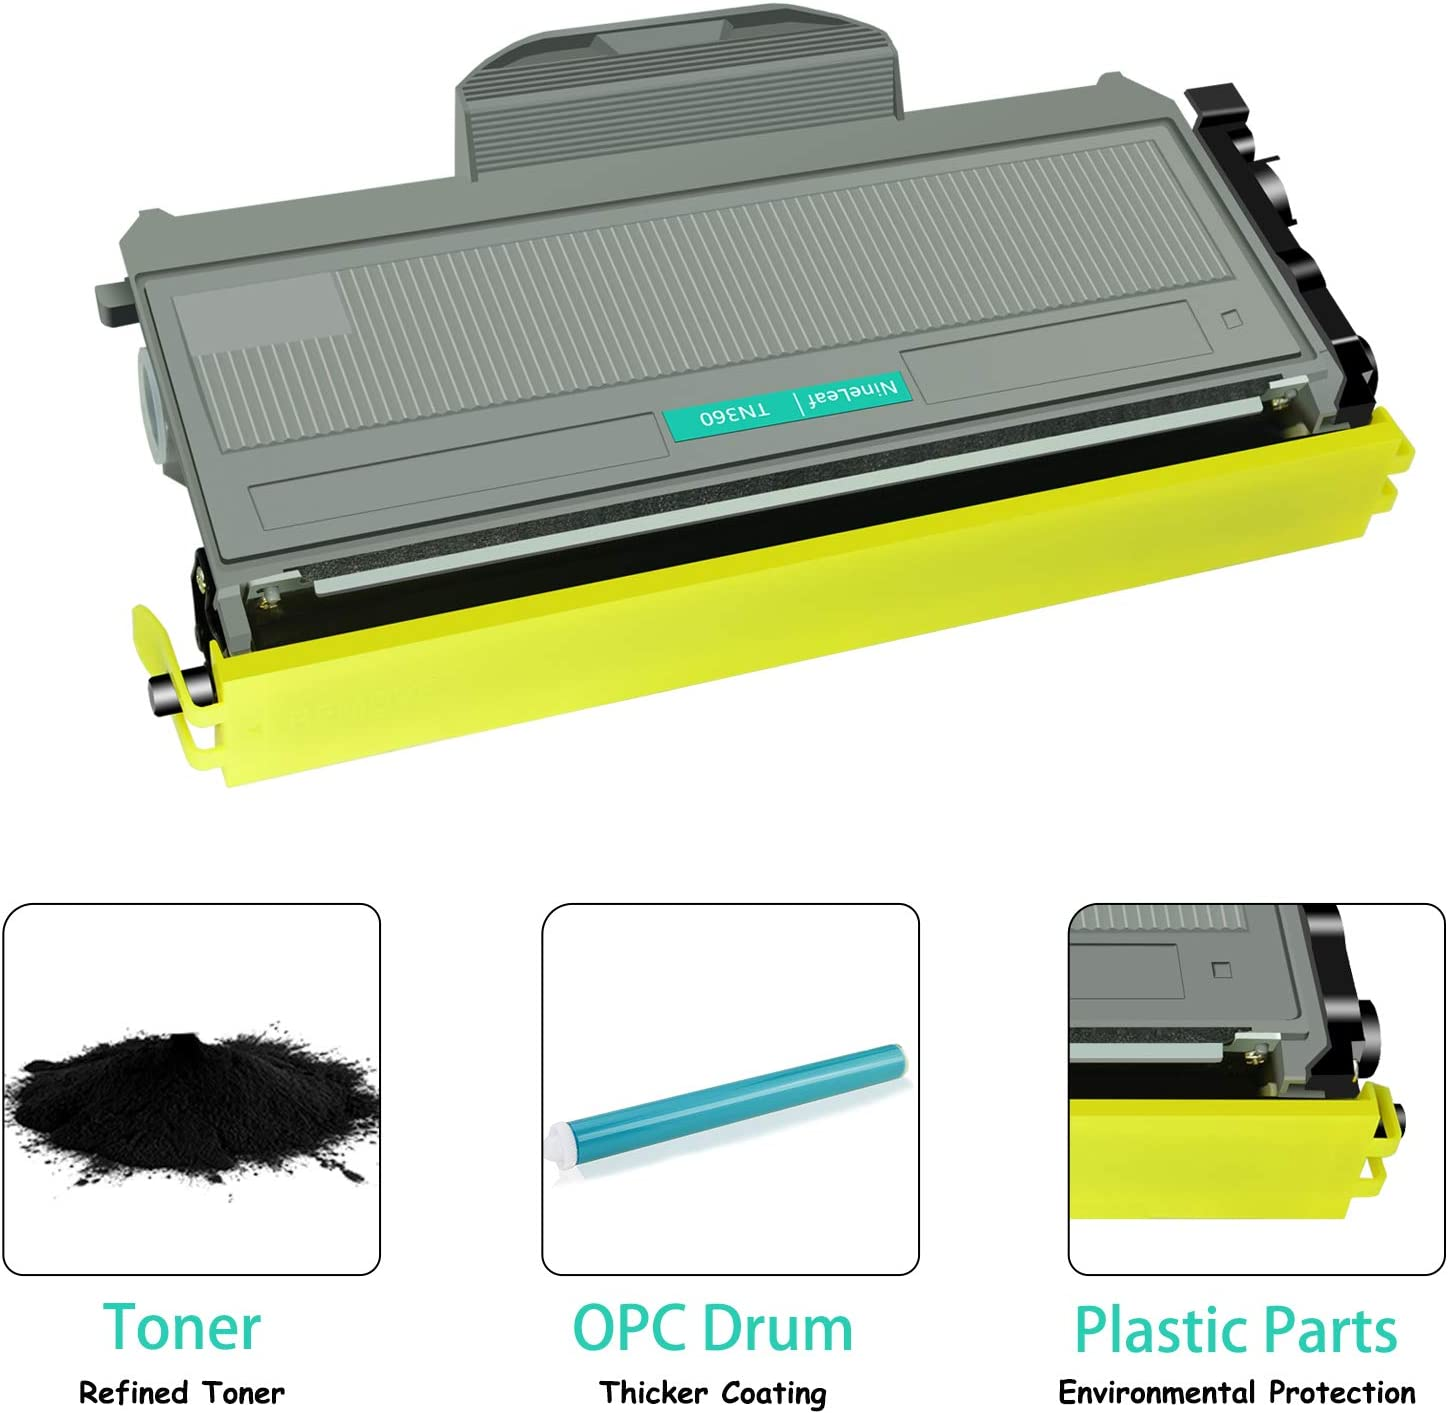 2 Black NineLeaf High Yield 2600 Pages Compatible Toner Cartridge Replacement for Brother TN330 TN360 TN-360 DCP-7030 DCP-7045N HL-2140 HL-2170W MFC-7340 MFC-7440N MFC-7840W Series Laser Printer